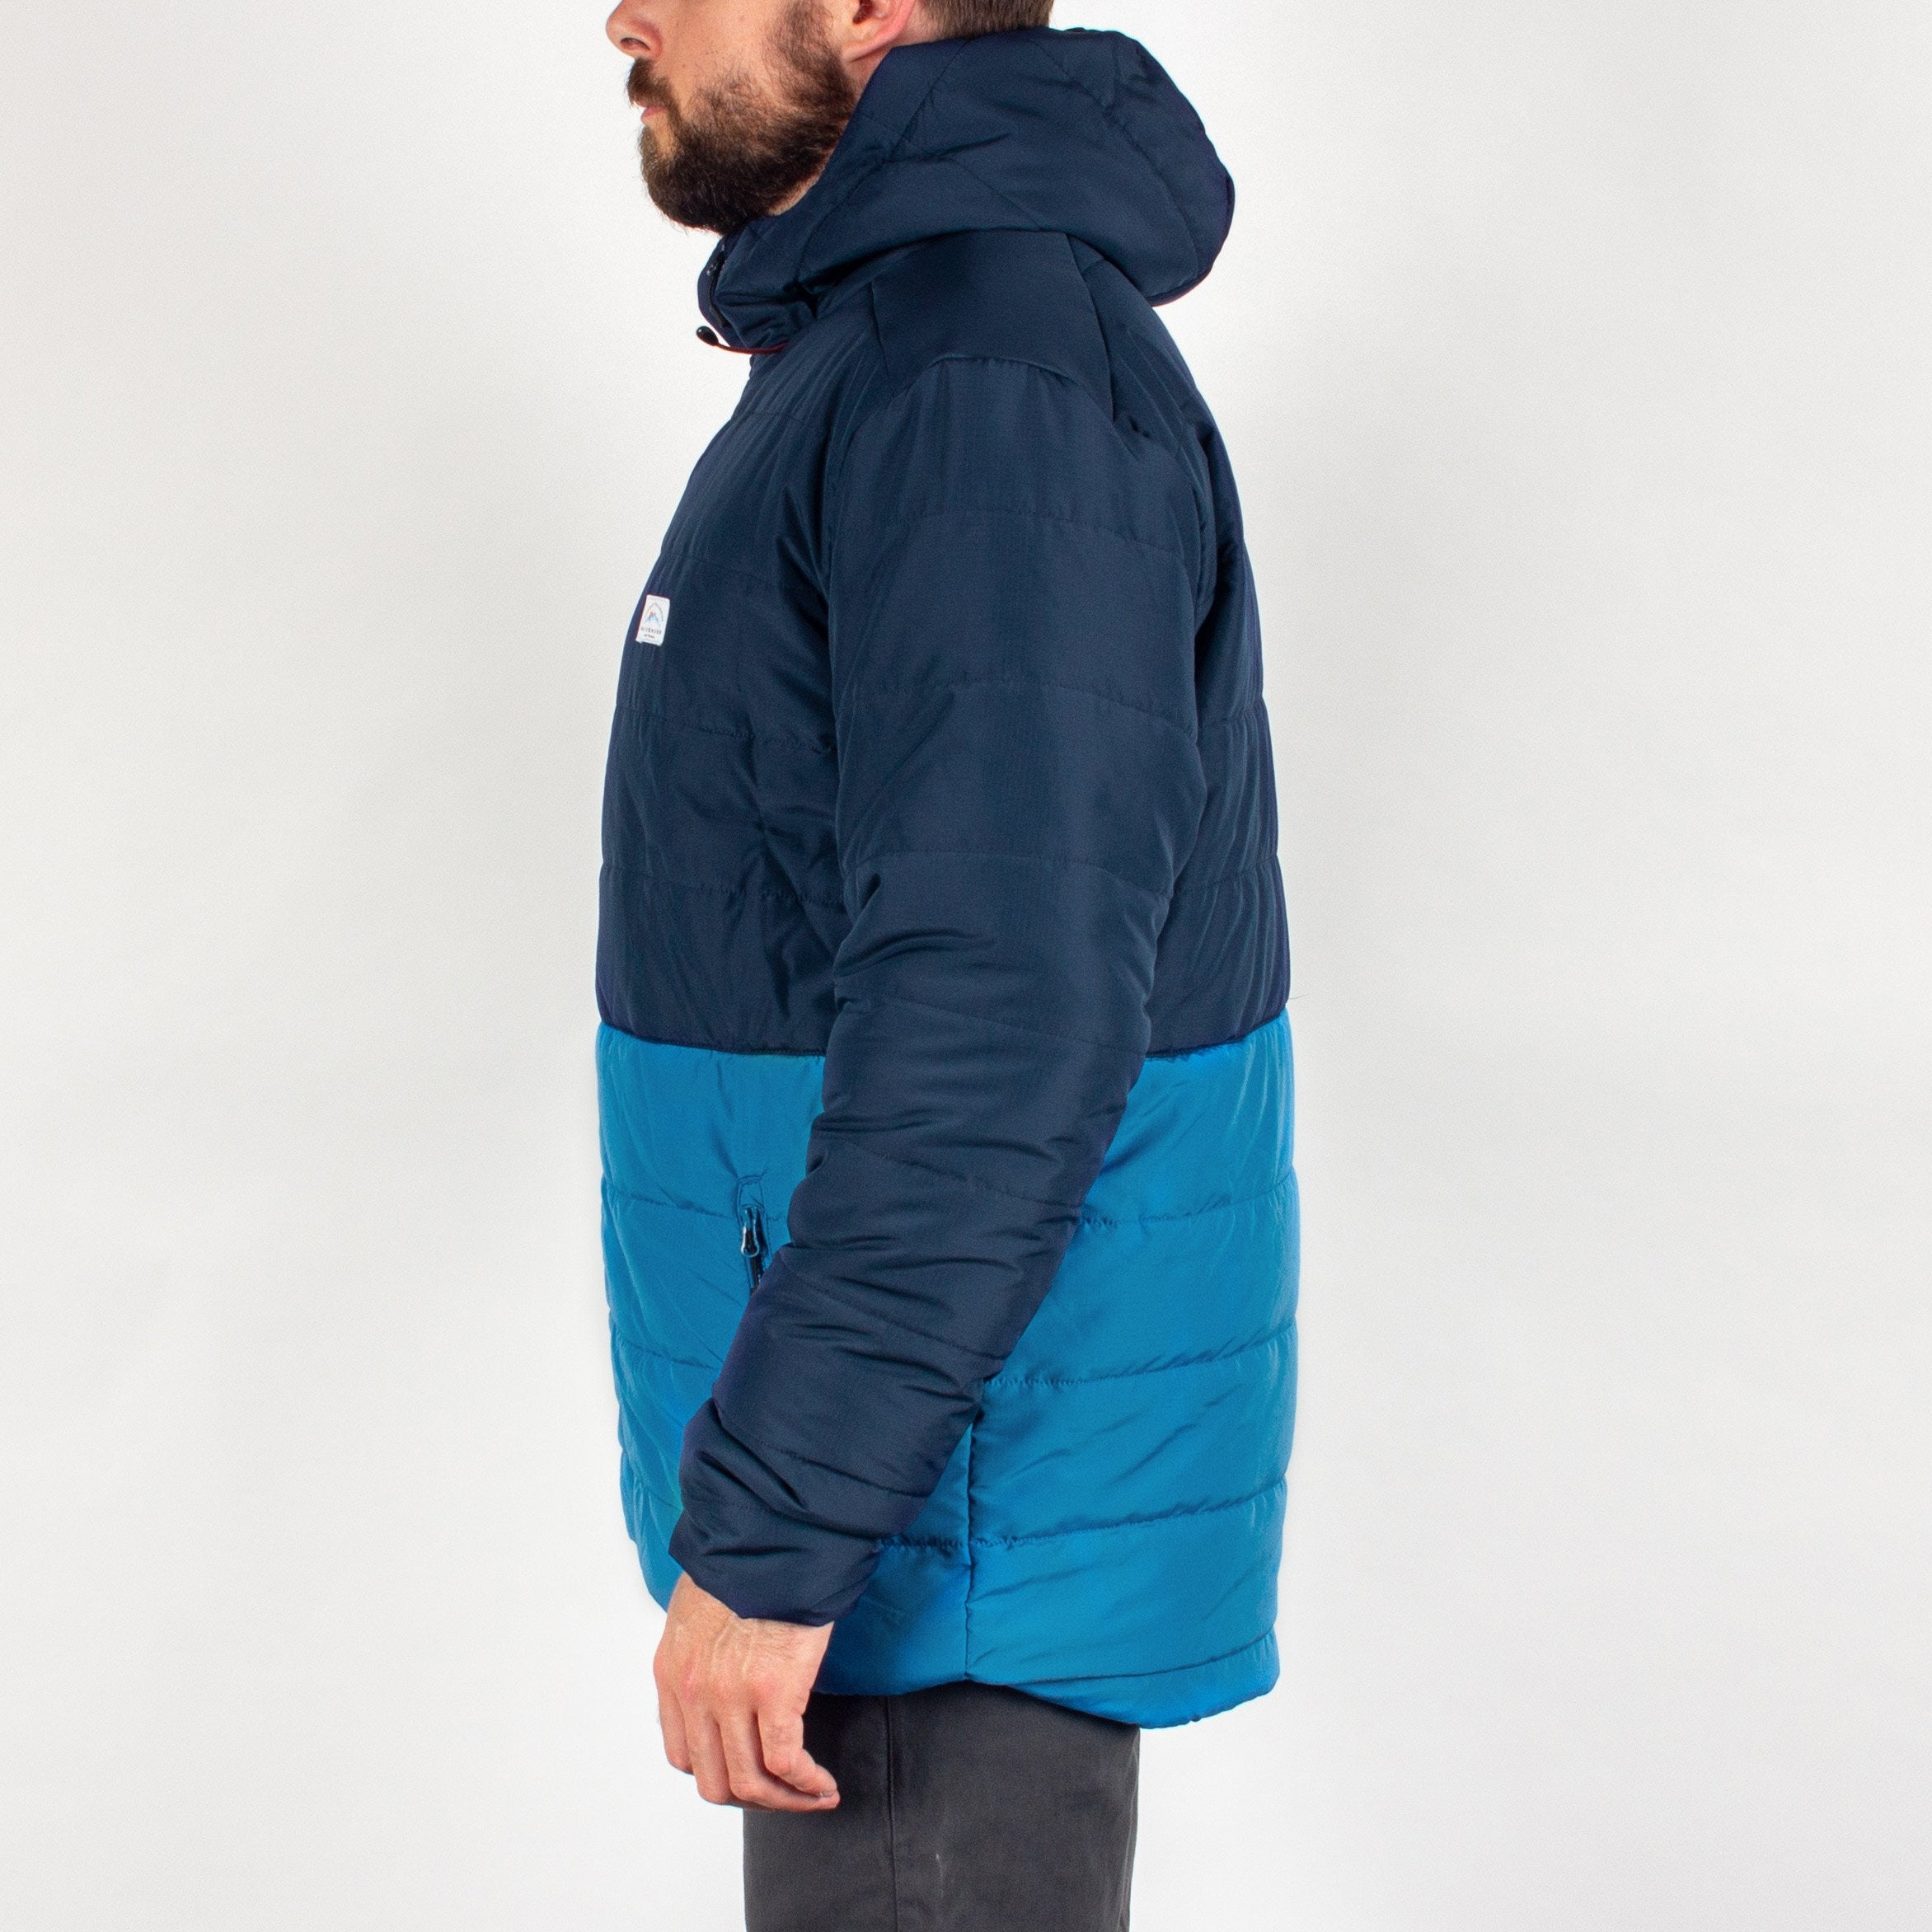 Patrol Insulated Jacket - Navy/Deep Water Blue image 4